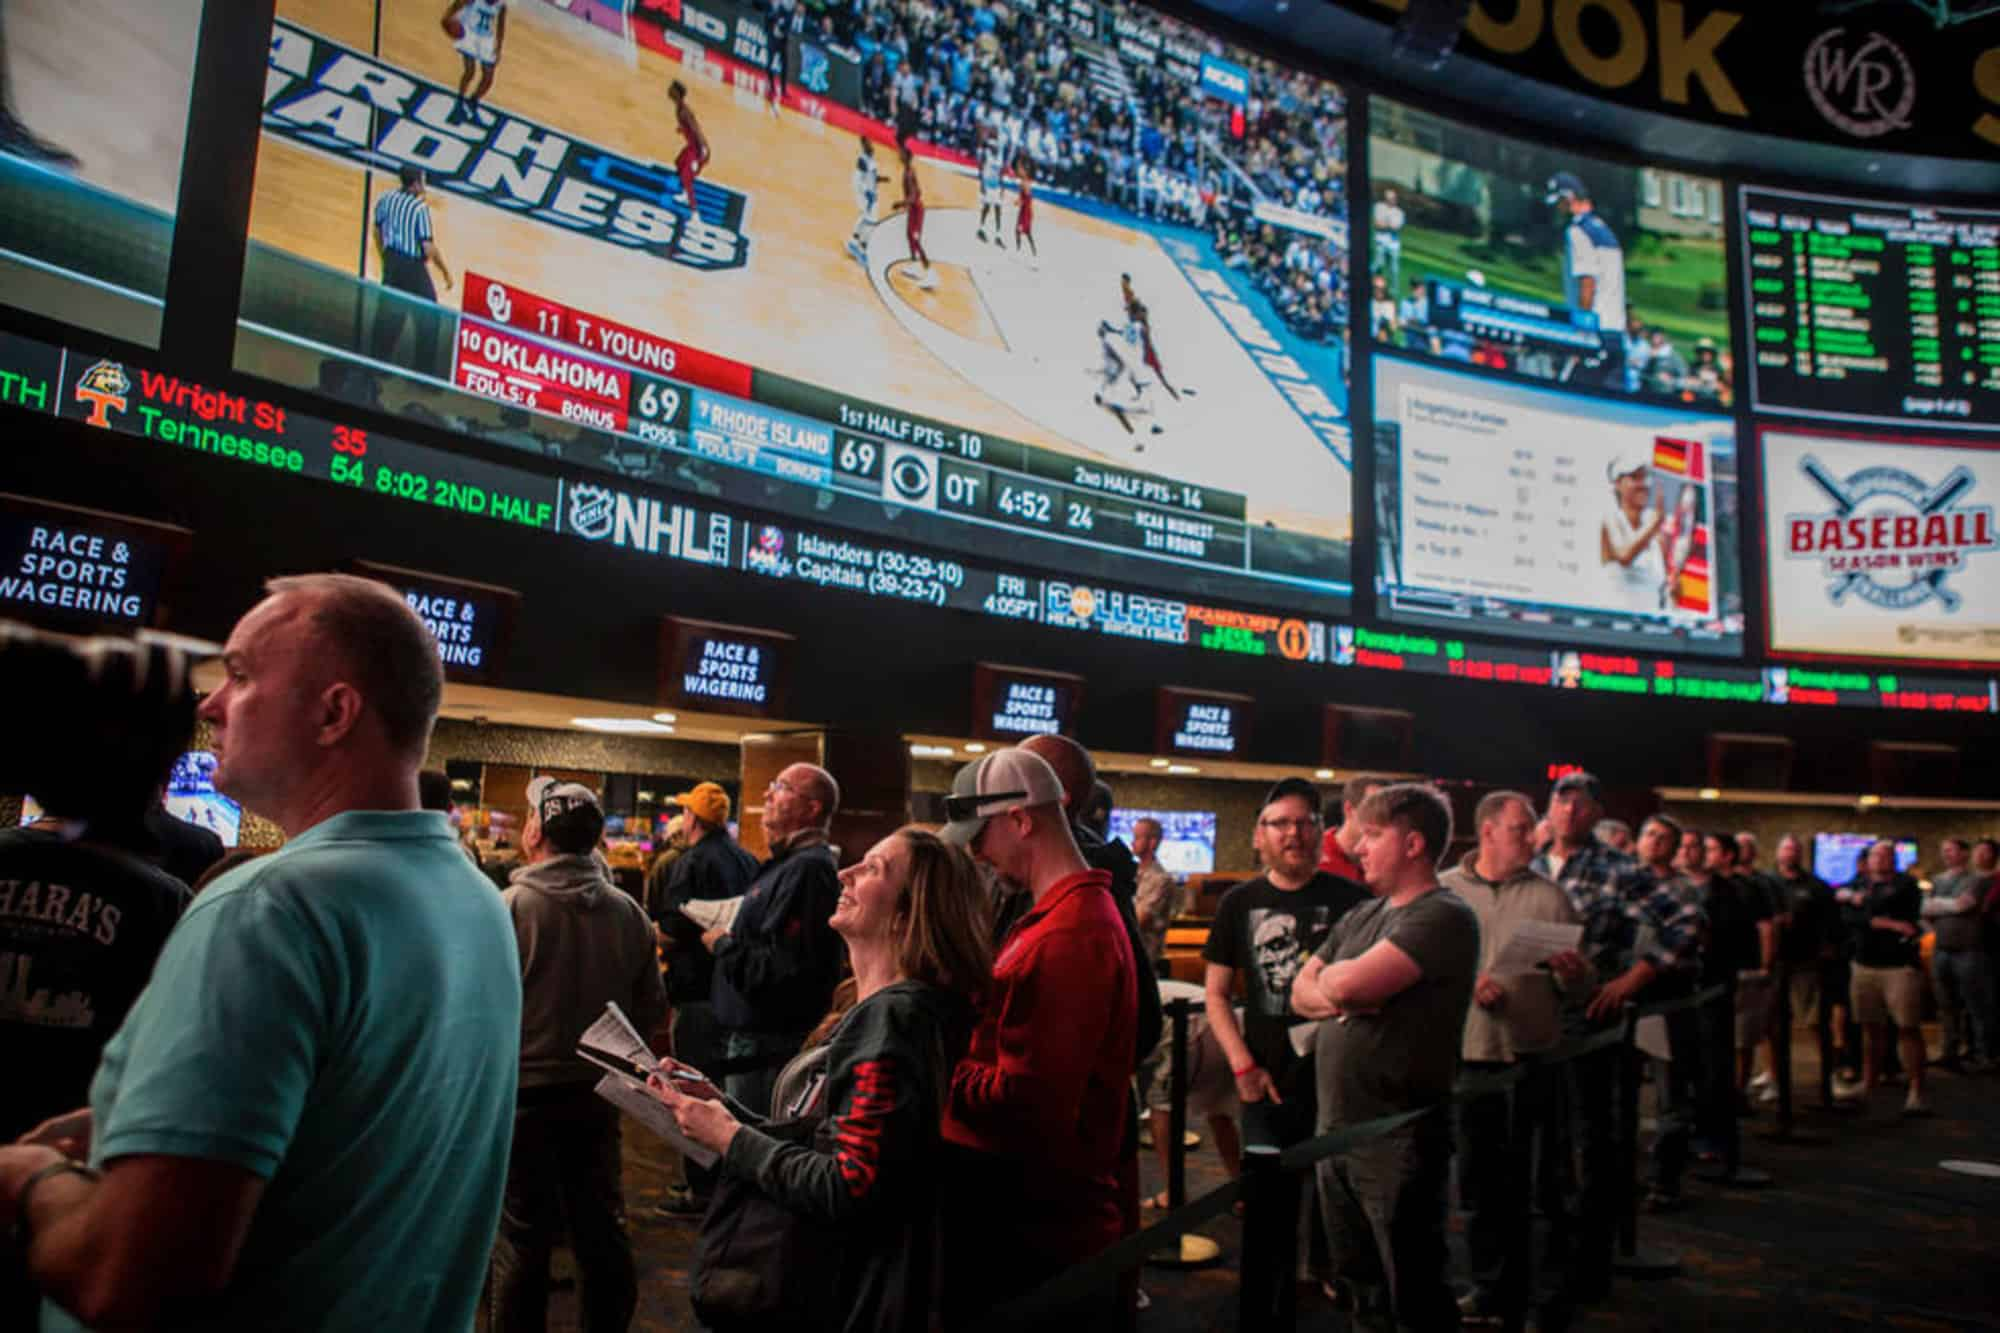 The Governor of New Jersey Defends Tax Rate on Sports Betting